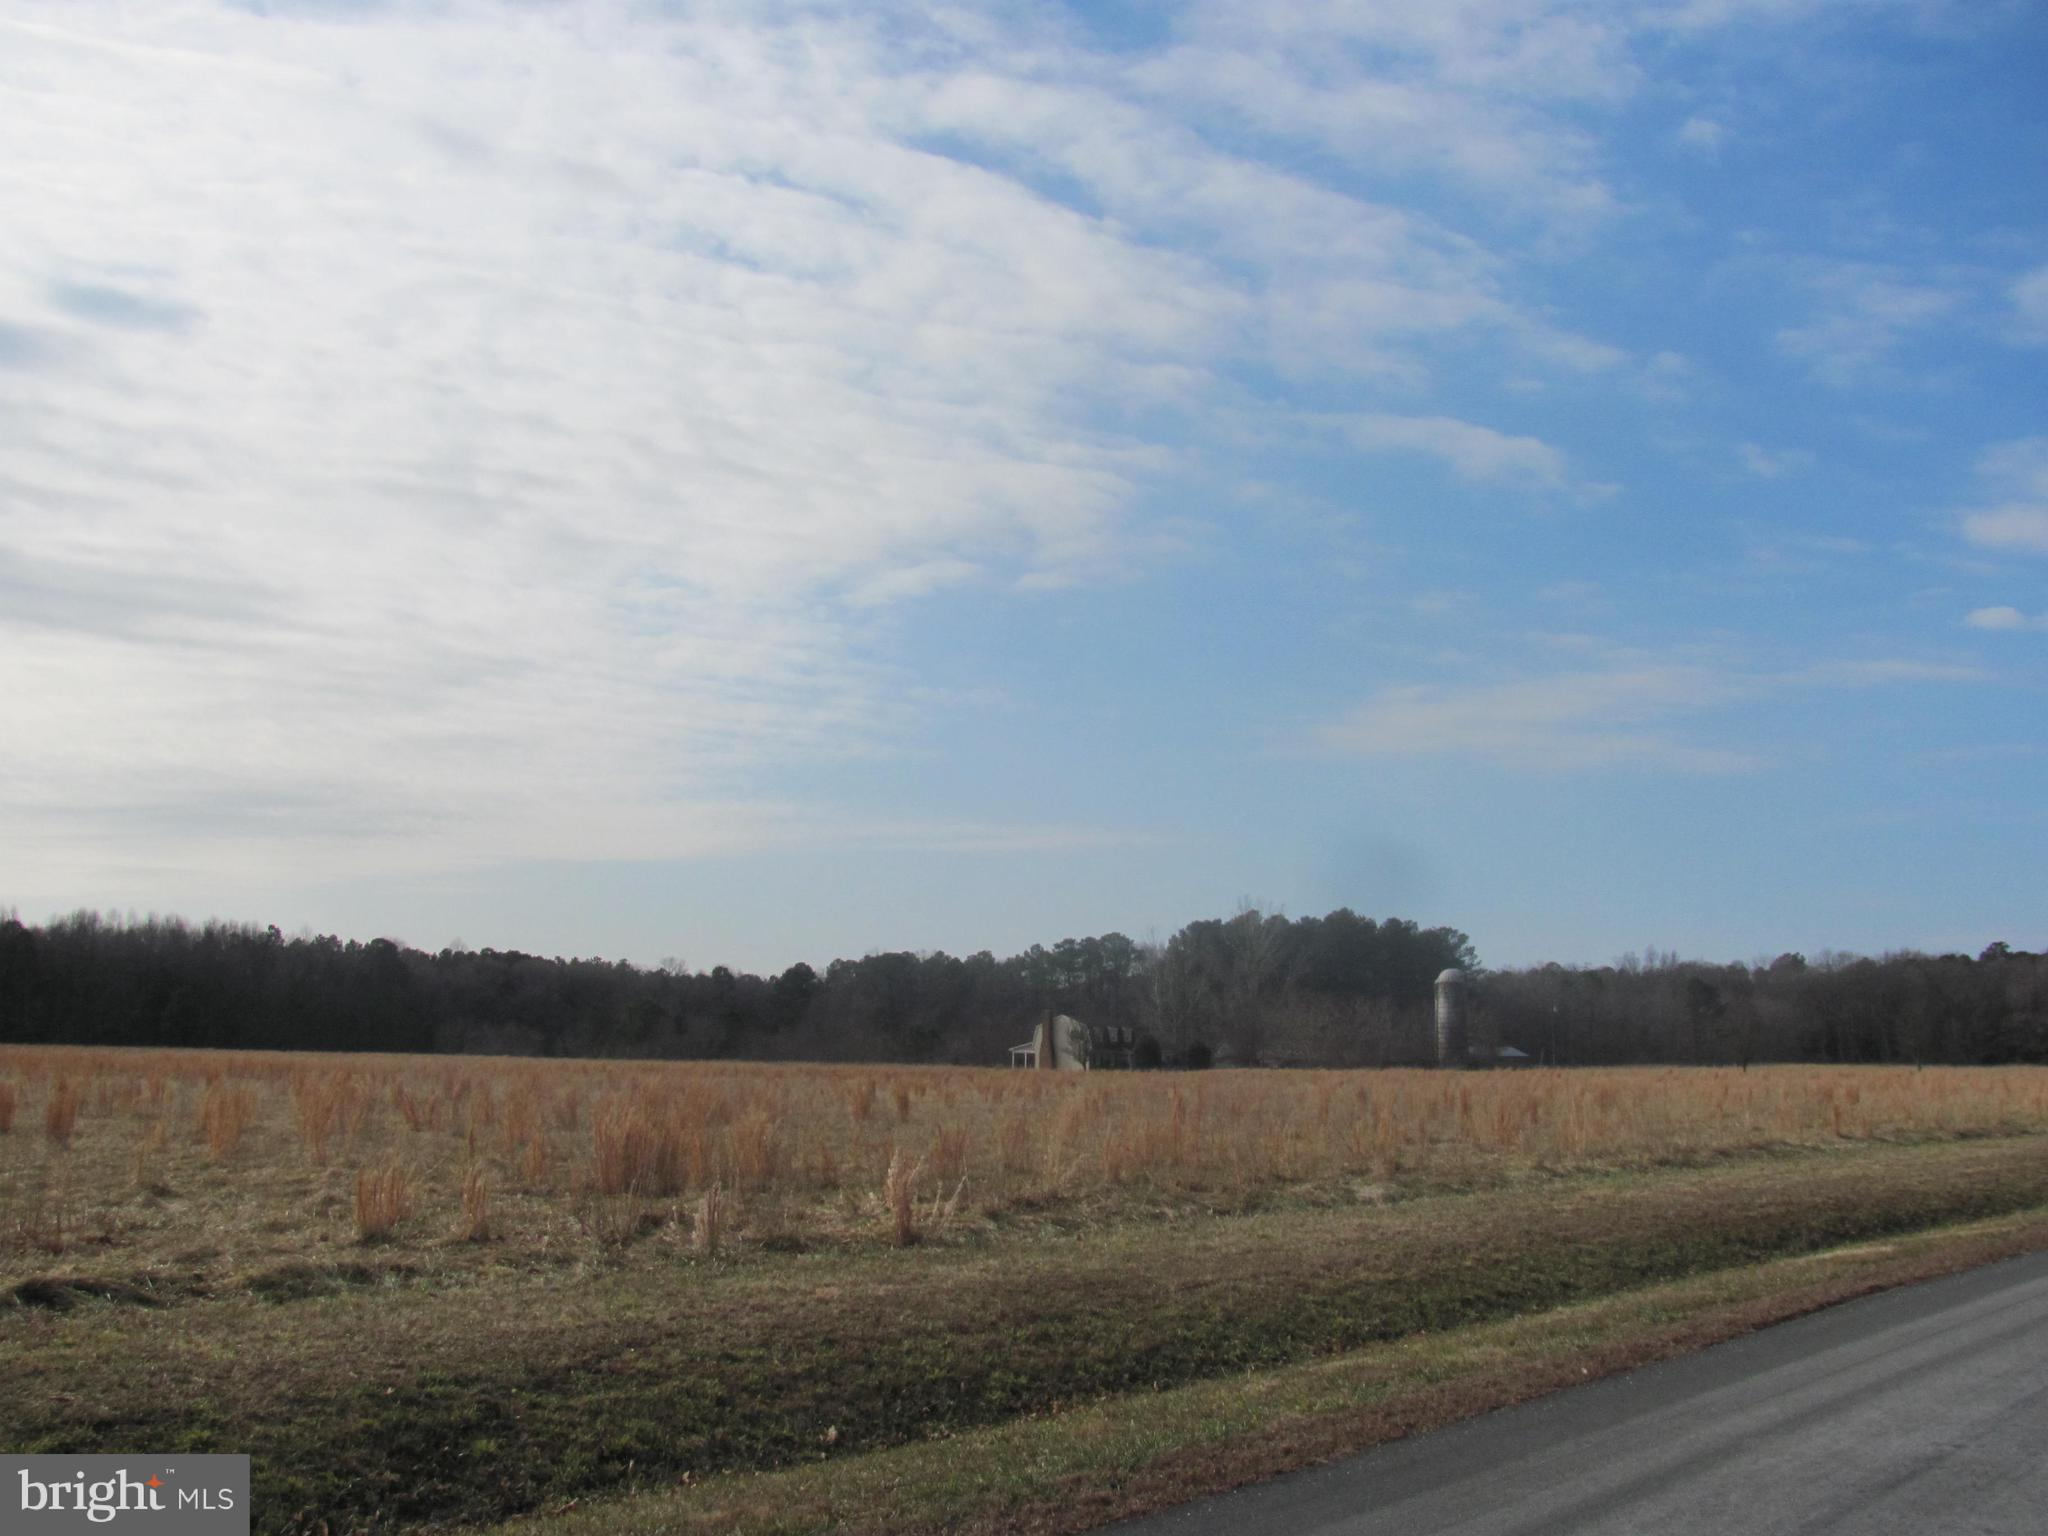 ATTENTION SUSSEX COUNTY BUILDERS AND DEVELOPERS! Unlimited Potential and Endless Possibilities! Beautiful 58.23 acre parcel with lots of road frontage, tree lined perimeter, small pond and a silo. Conveniently located off of RT. 5 with close proximity to RT. 1 and beaches. Great opportunity for development! For security reasons, please don't walk the property or drive up the driveway to the house without an appointment. Don't want to startle the homeowners. Thank you.